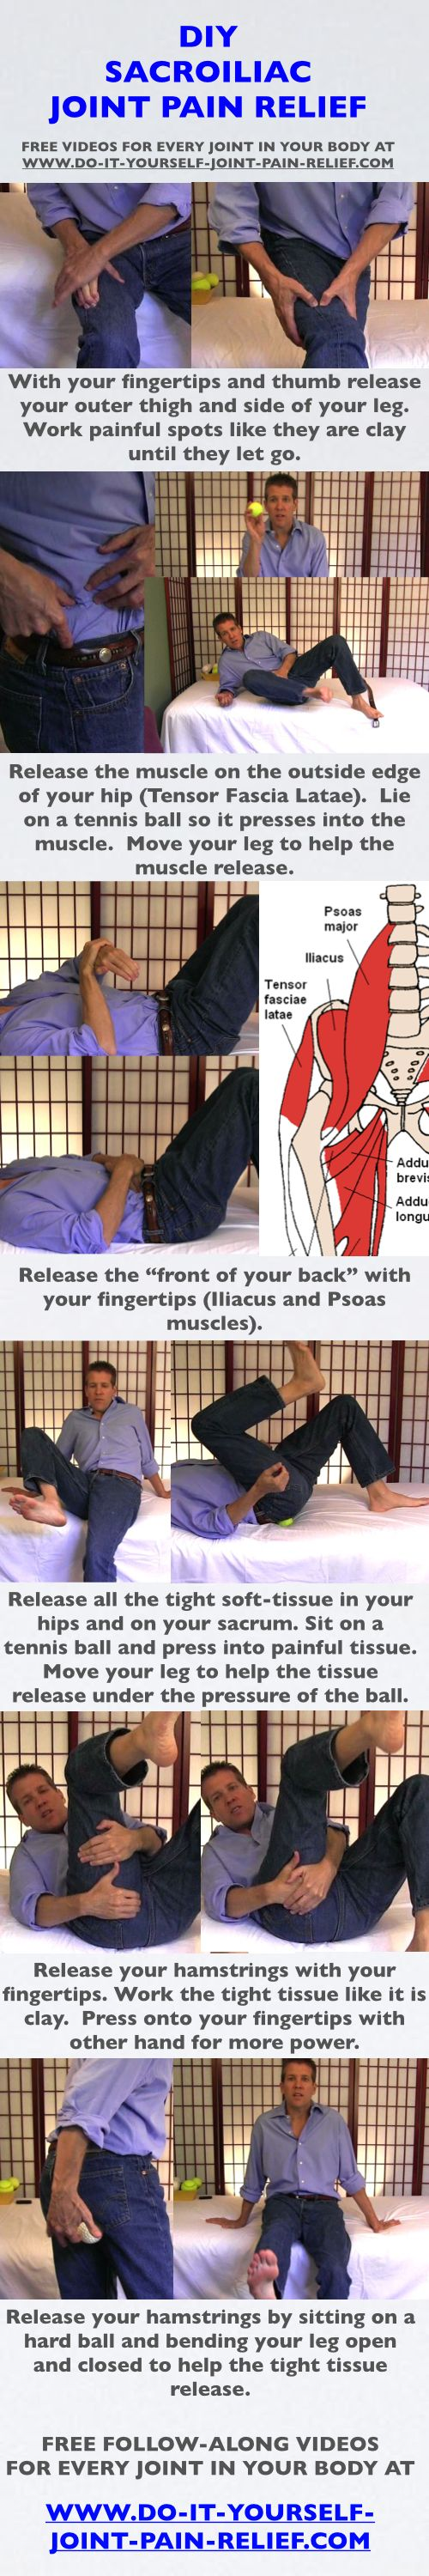 Diy sacroiliac joint pain relief do it yourself joint pain diy sacroiliac joint pain relief do it yourself joint pain relief pinterest pain relief si joint and exercises solutioingenieria Gallery